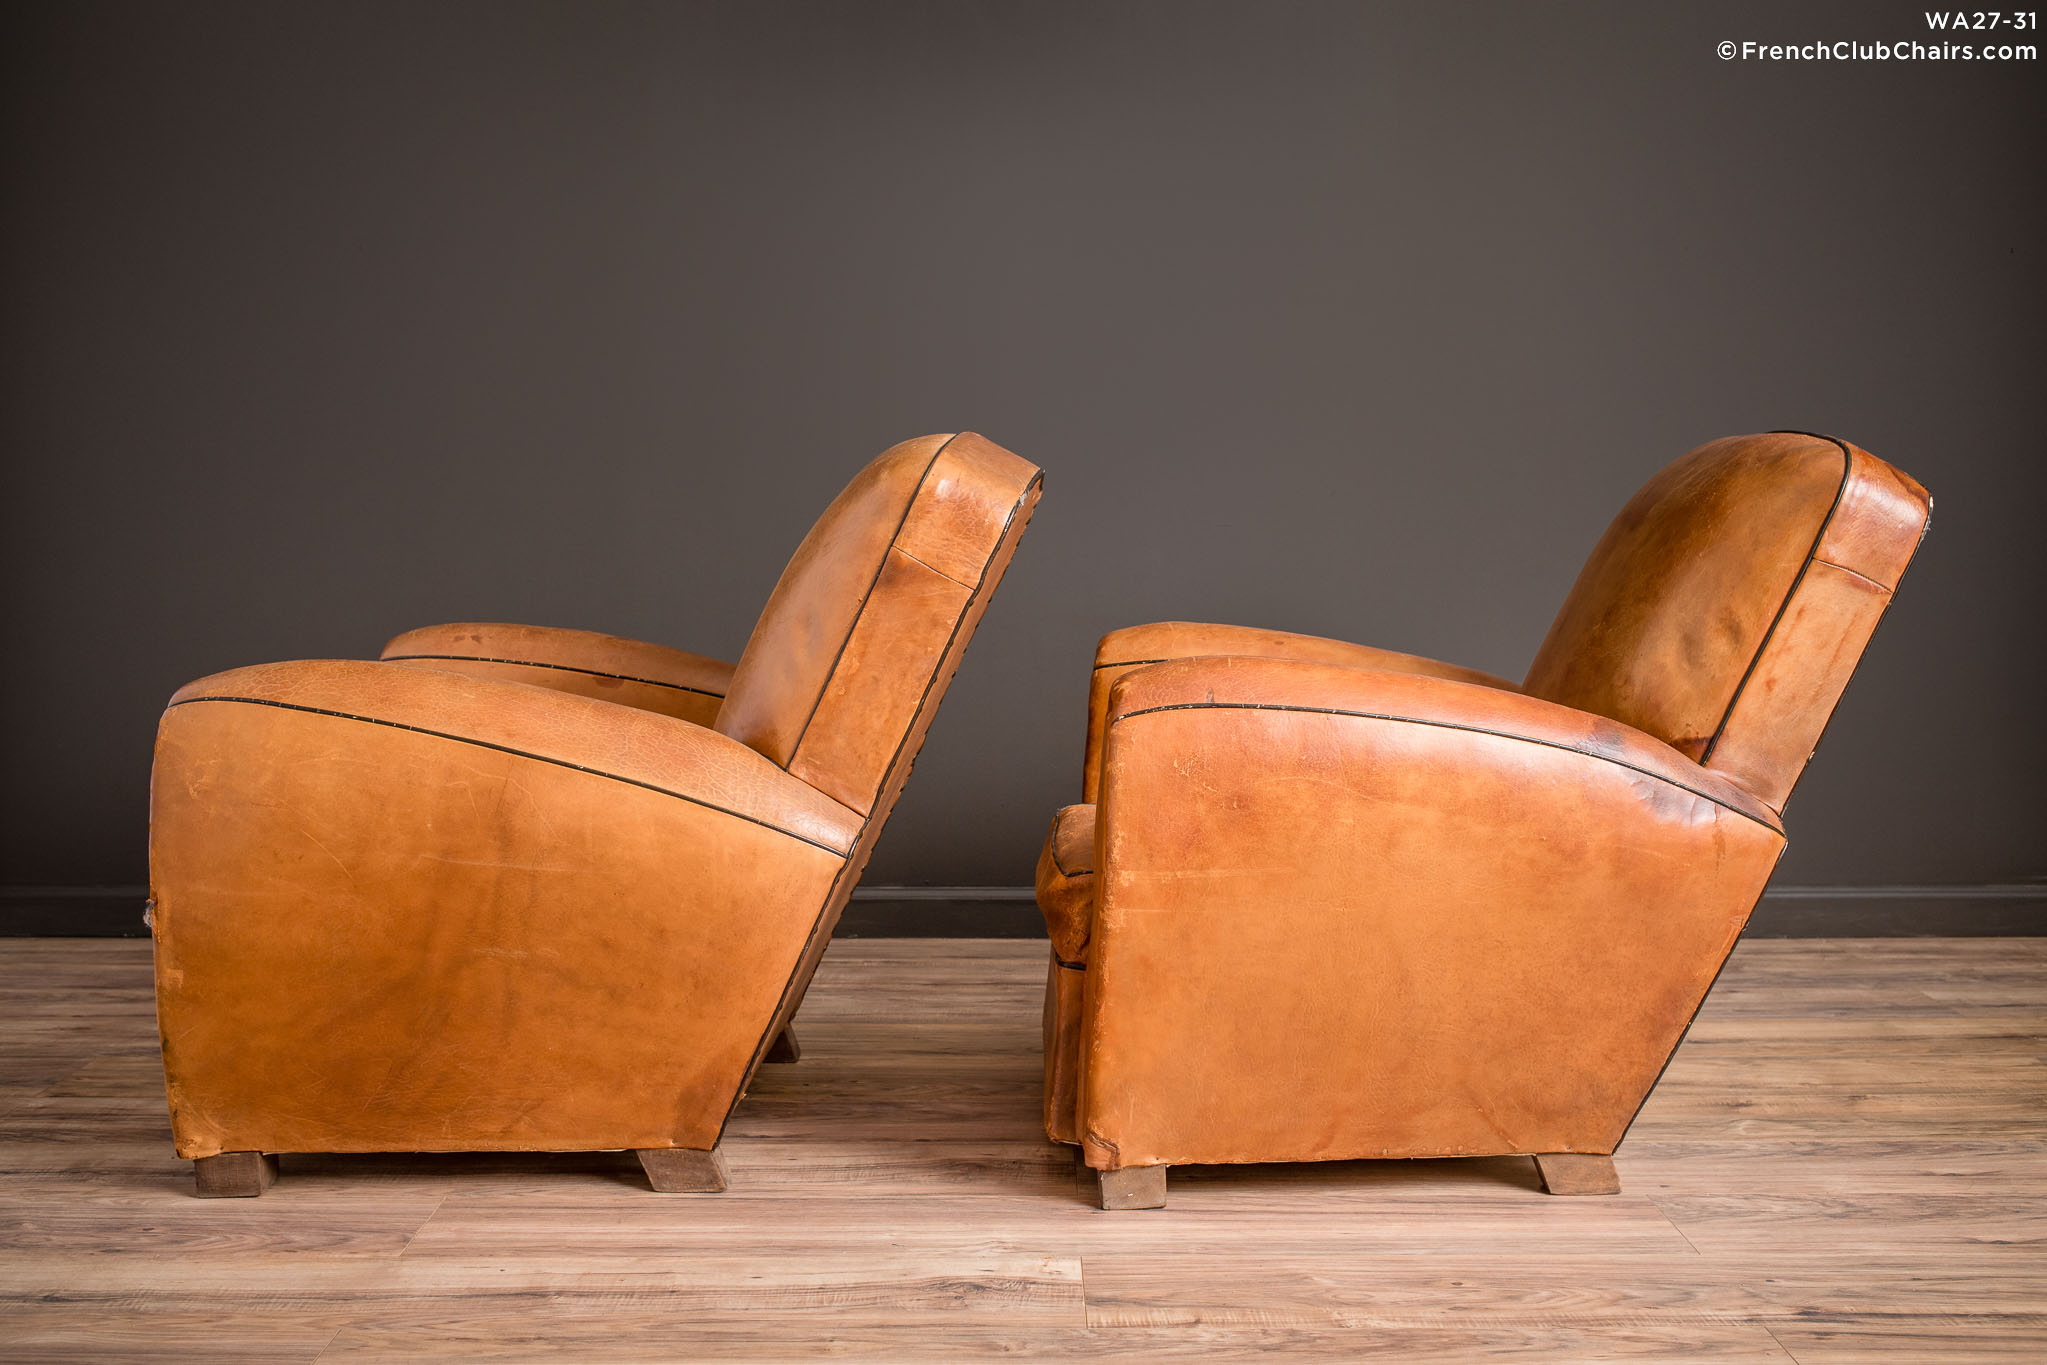 WA_27-31_Picardie_Library_Light_Caramel_Pair_R_4LT-v01-williams-antiks-leather-french-club-chair-wa_fcccom